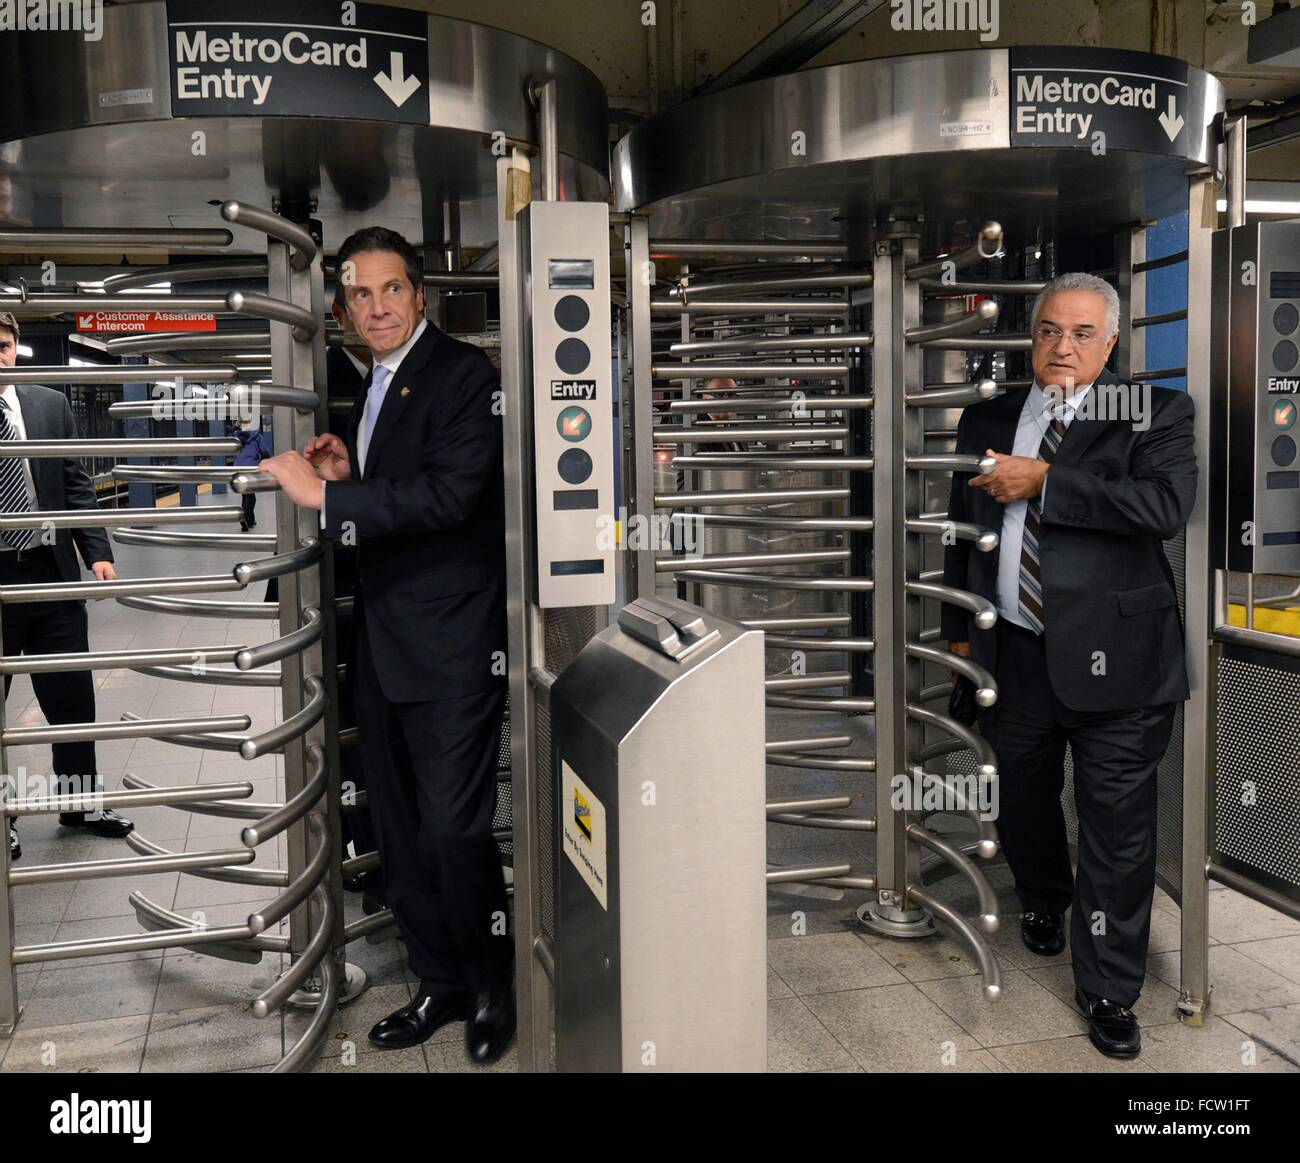 New York Governor Andrew Cuomo walks through a subway turnstile after riding the E train subway to assure New Yorkers - Stock Image